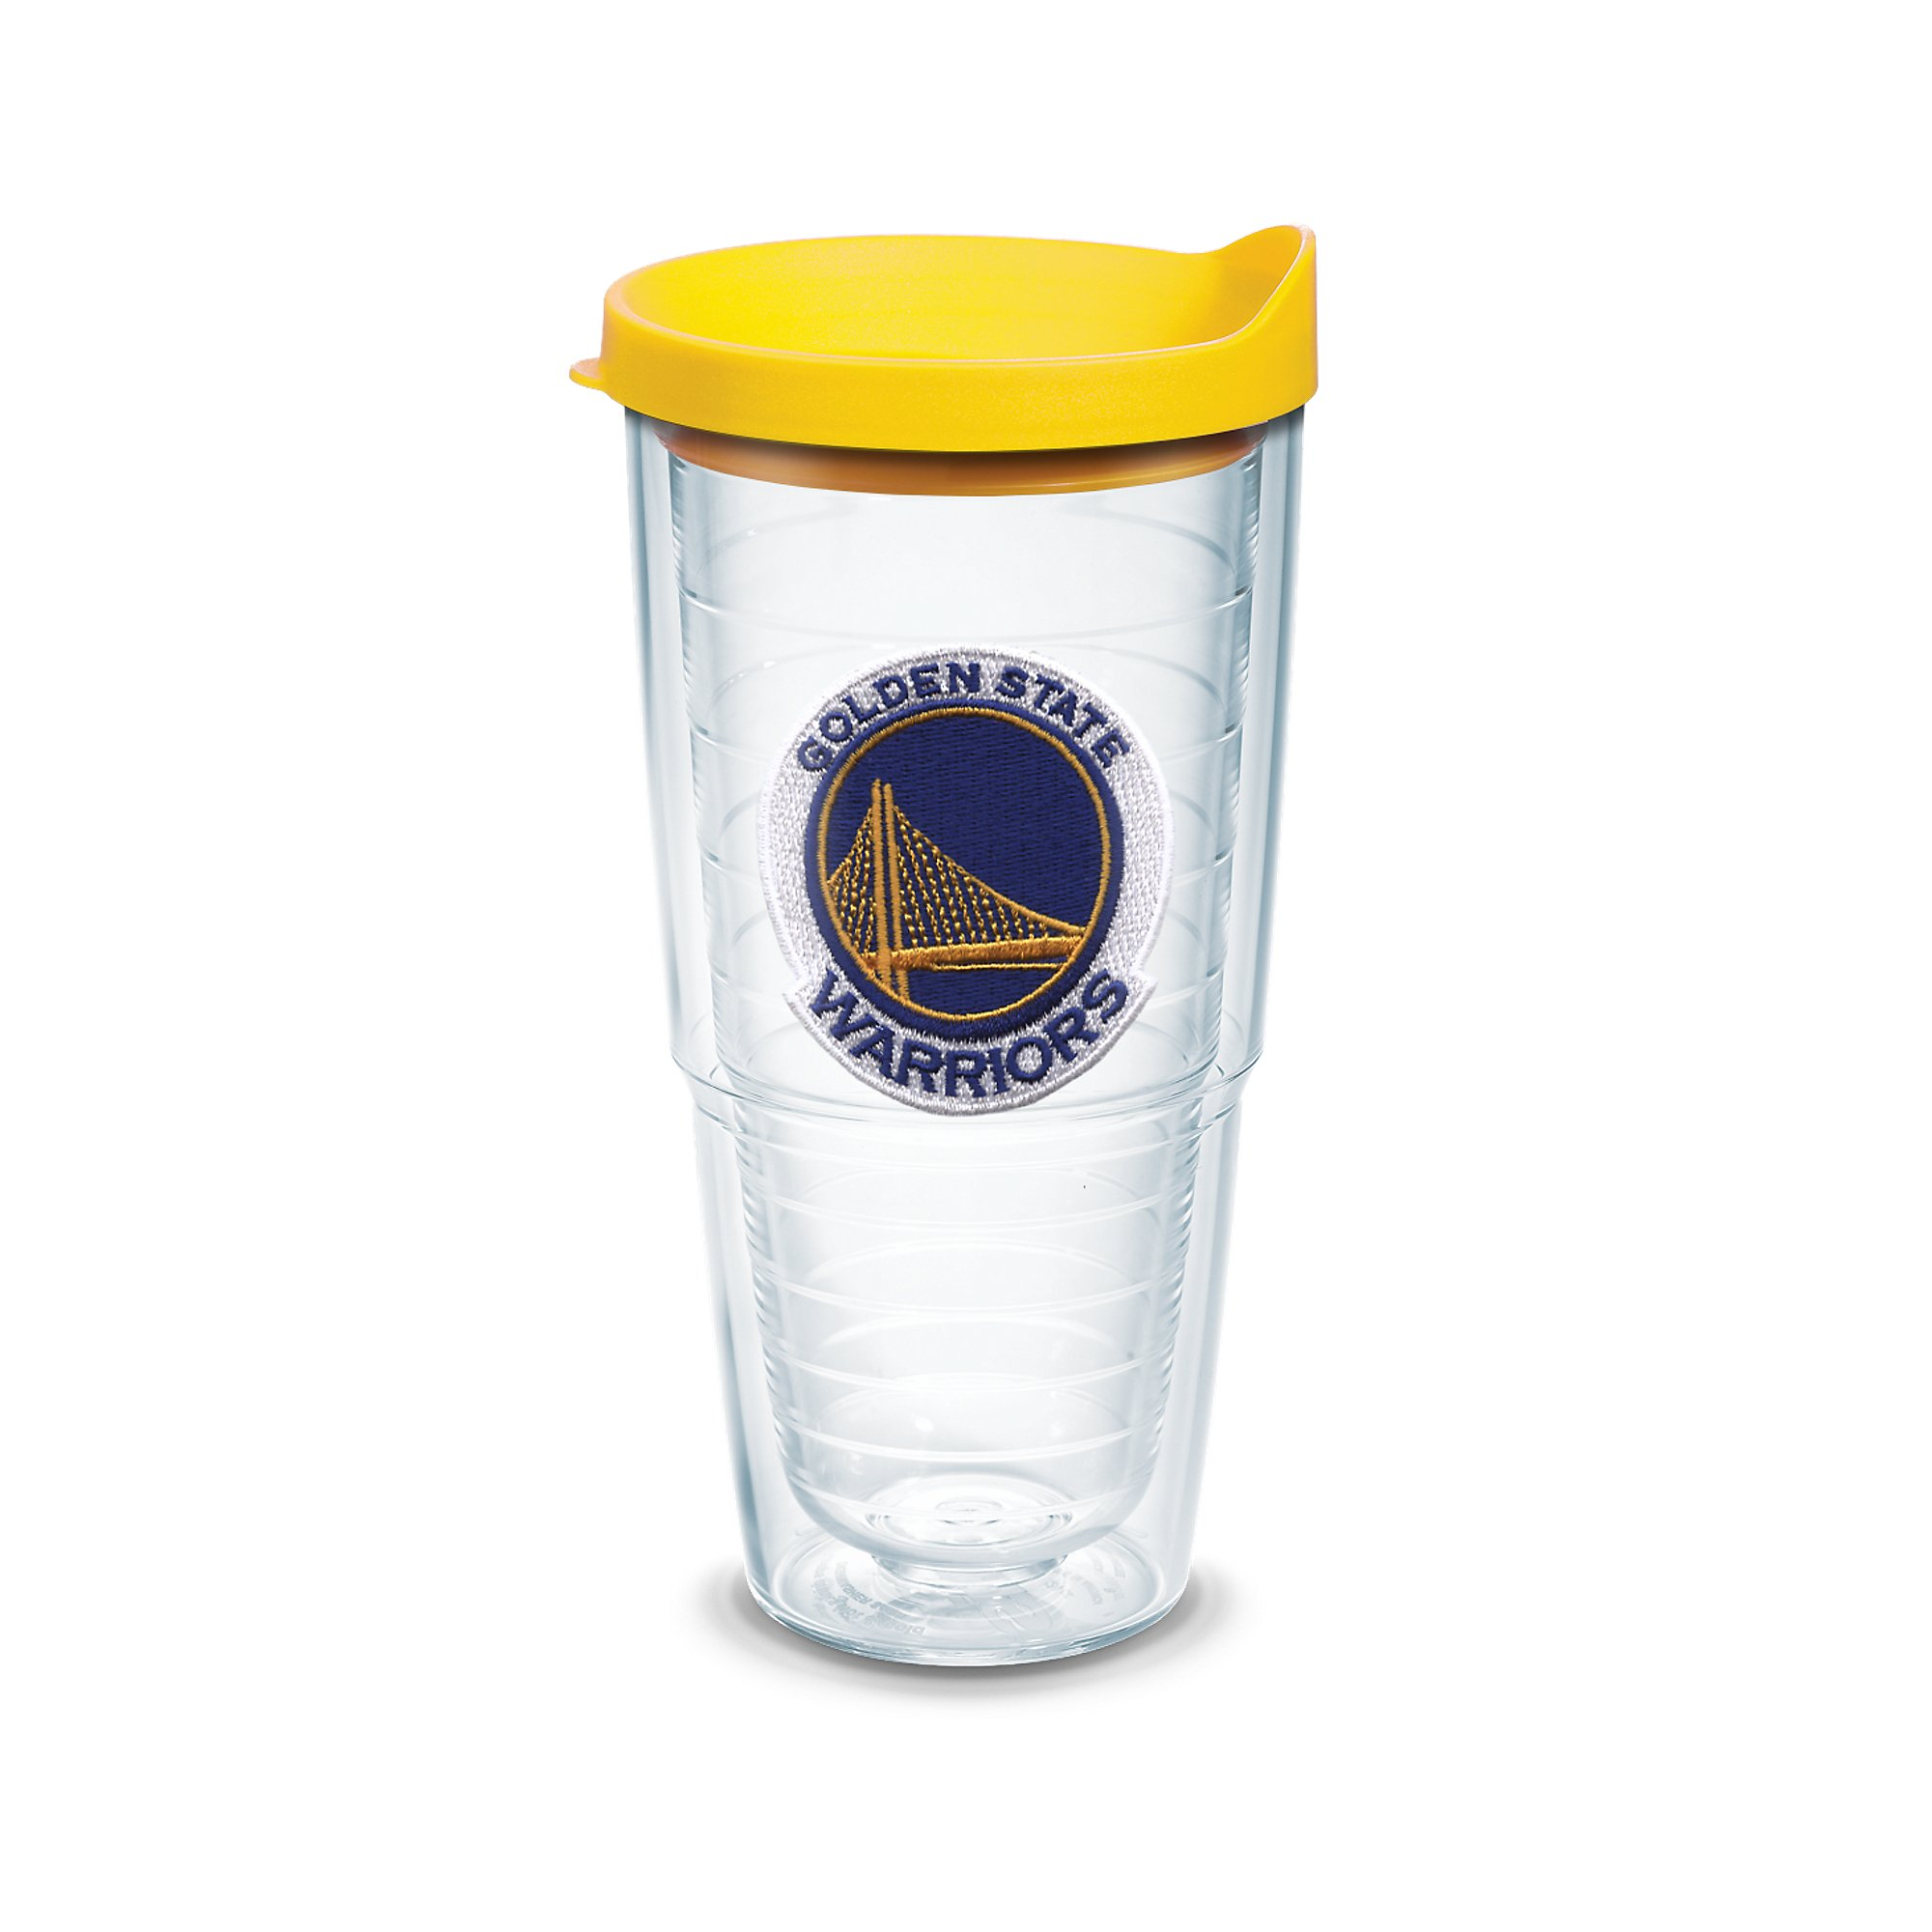 Tervis 1051629 NBA Golden State Warriors Primary Logo Tumbler with Emblem and Yellow Lid 24oz, Clear by Tervis